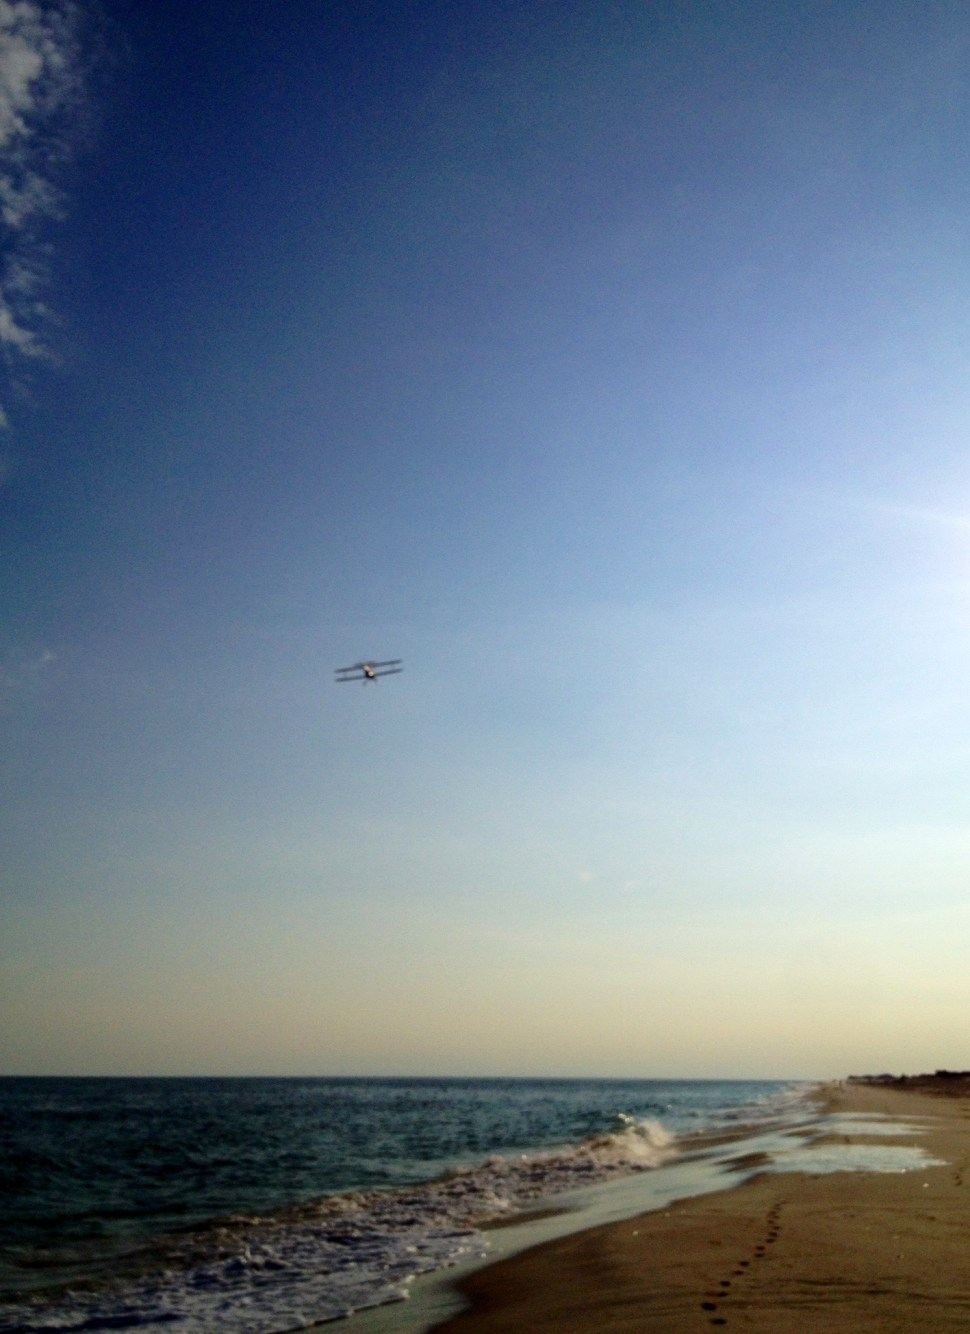 The Atlantic Ocean from Cherry Grove, Fire Island. Photo by Rick Stachura. August 20, 2014